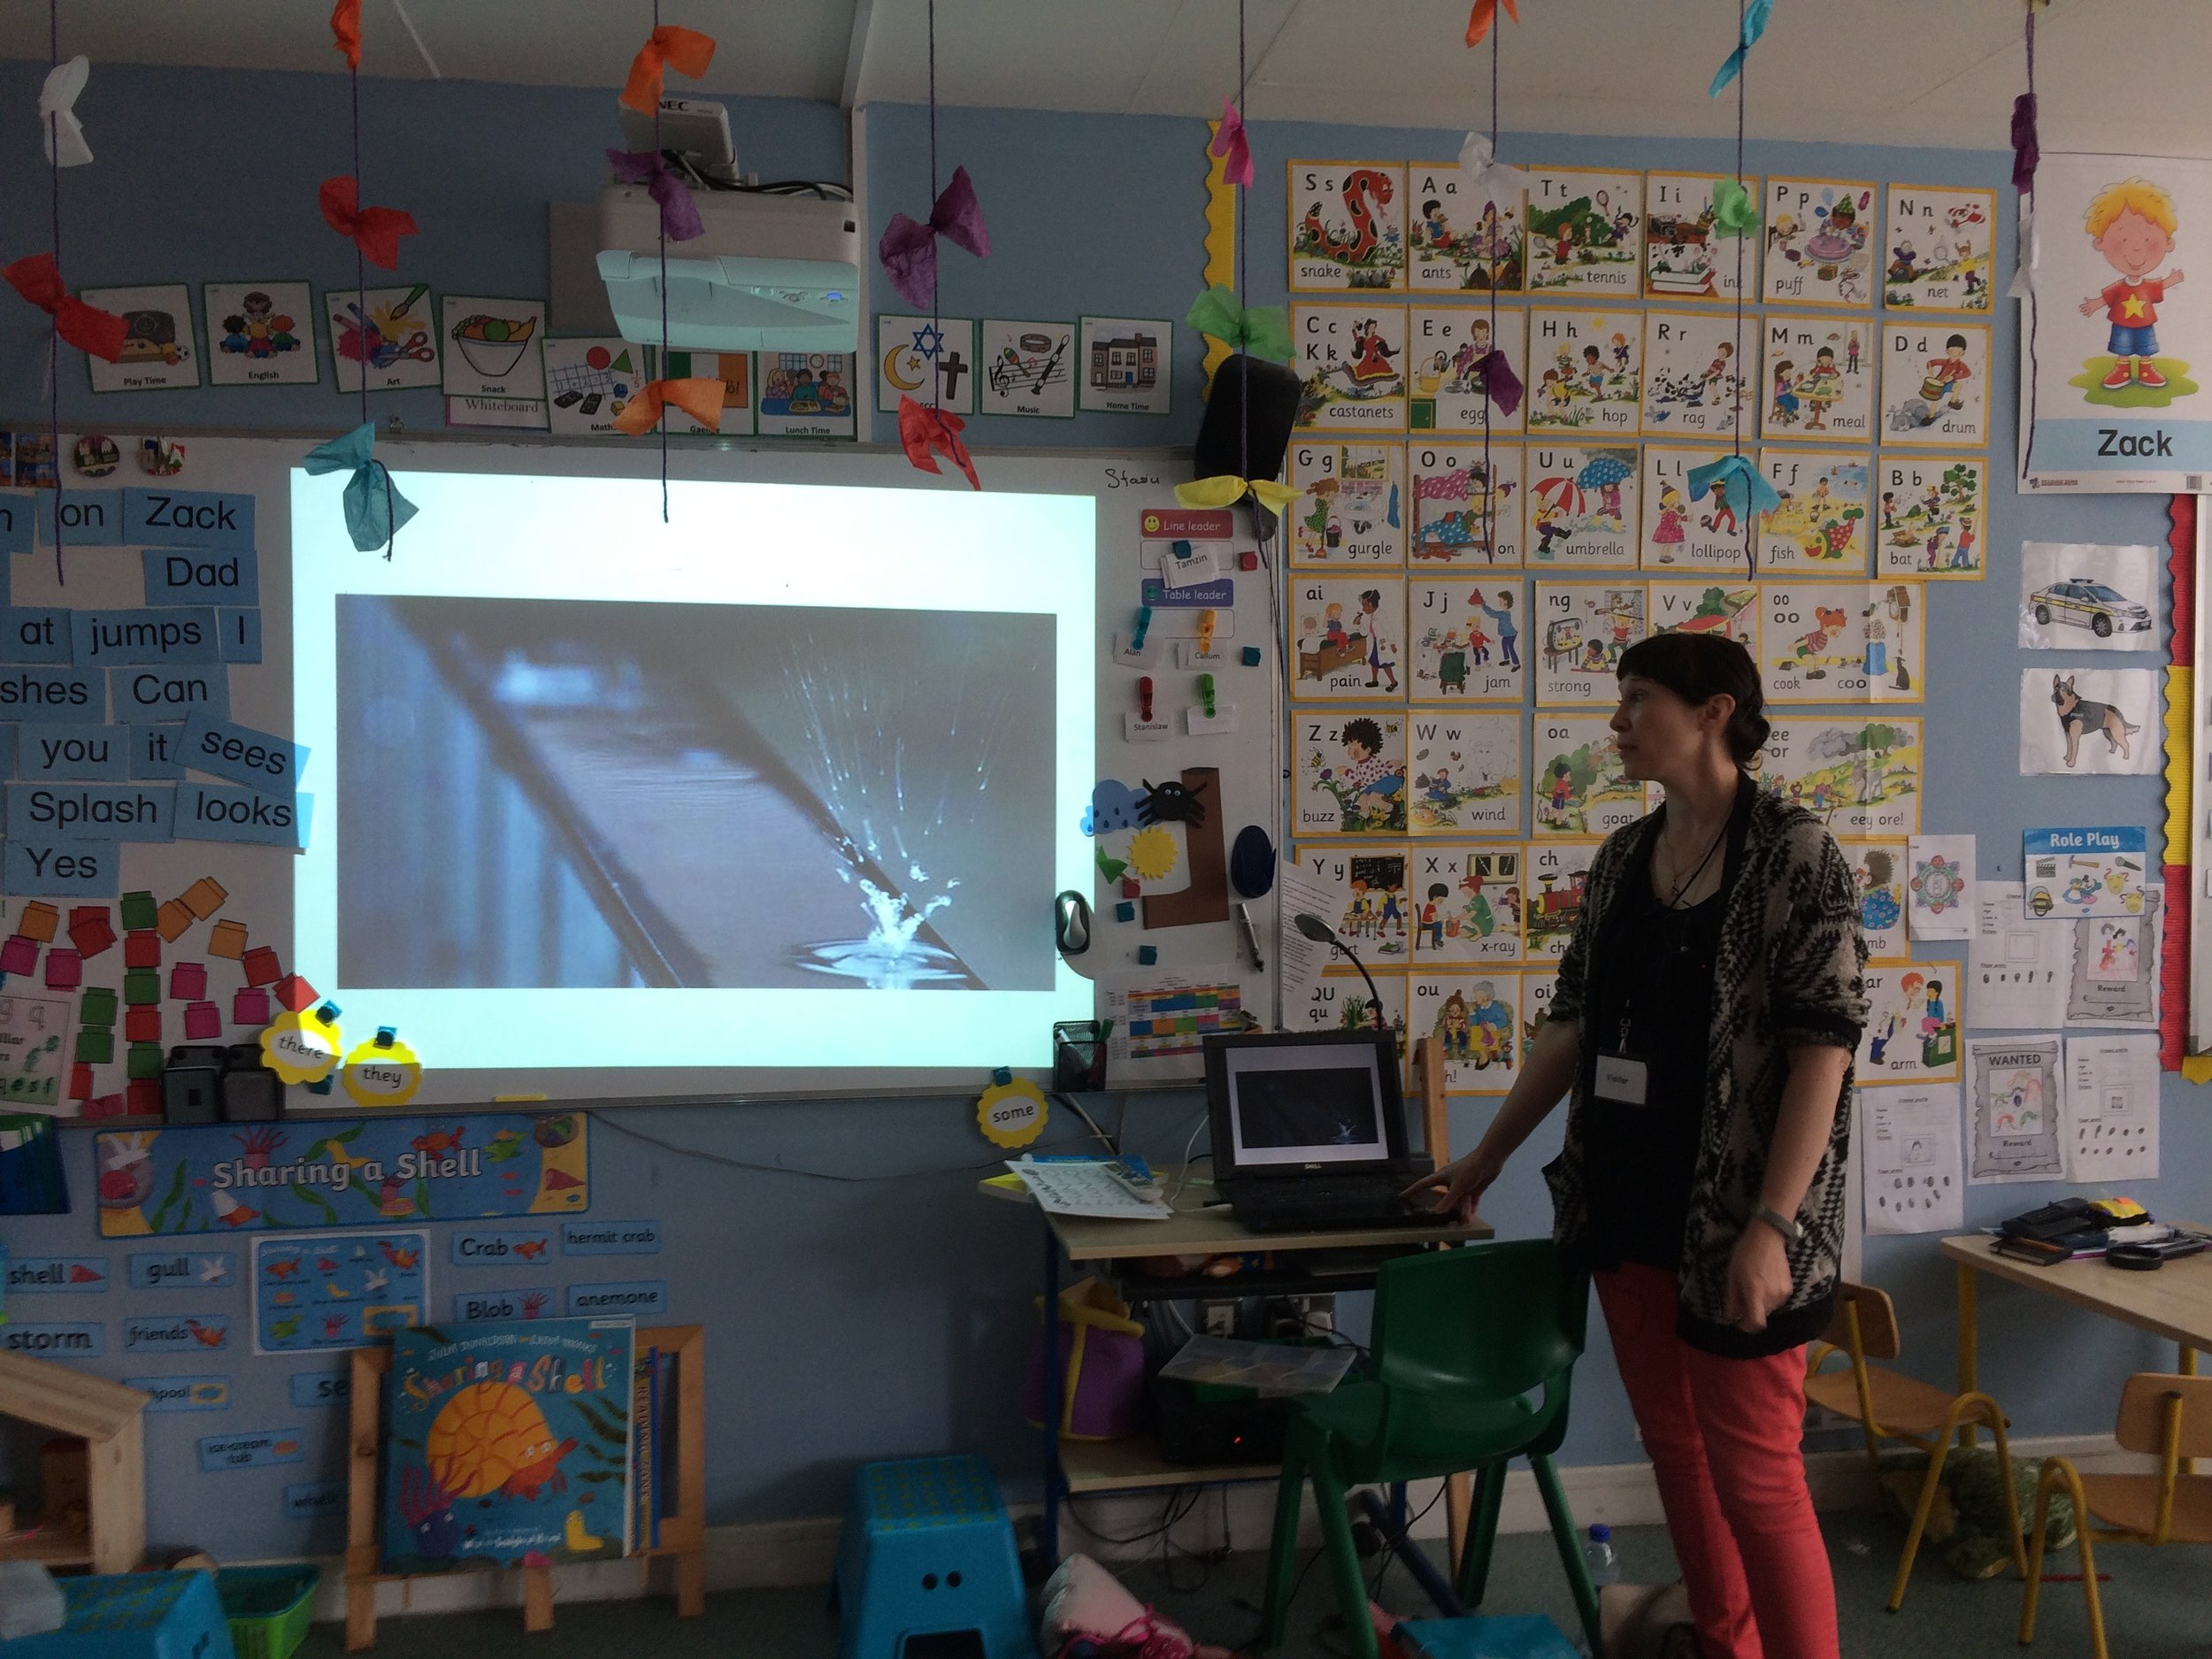 Beth showed images of of various nature 'drawings' such as an airplane's jet trail, snail trails, raindrops on a window.